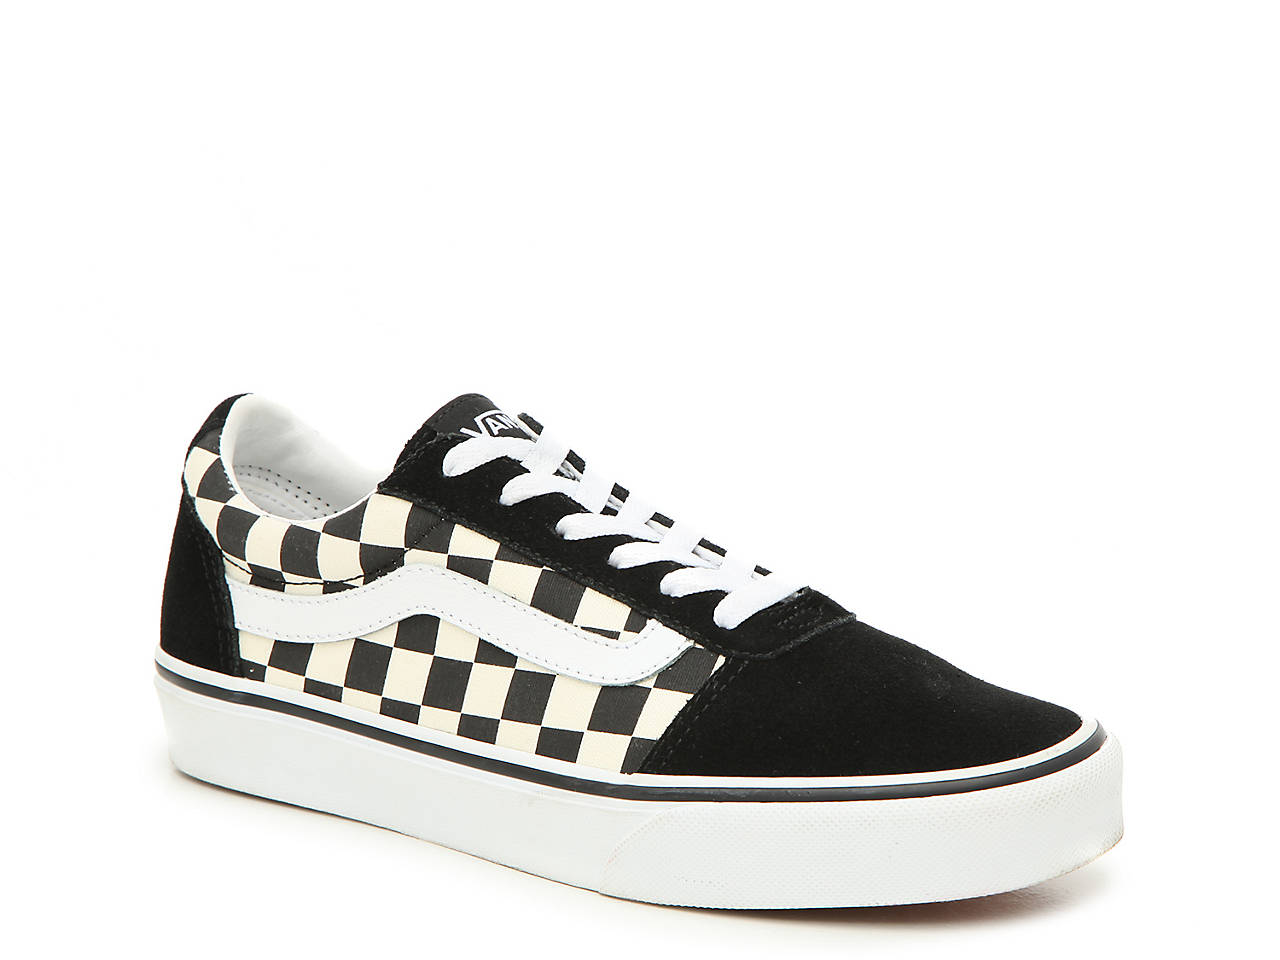 b1467a5c1eff Vans Ward Sneaker - Women s Women s Shoes